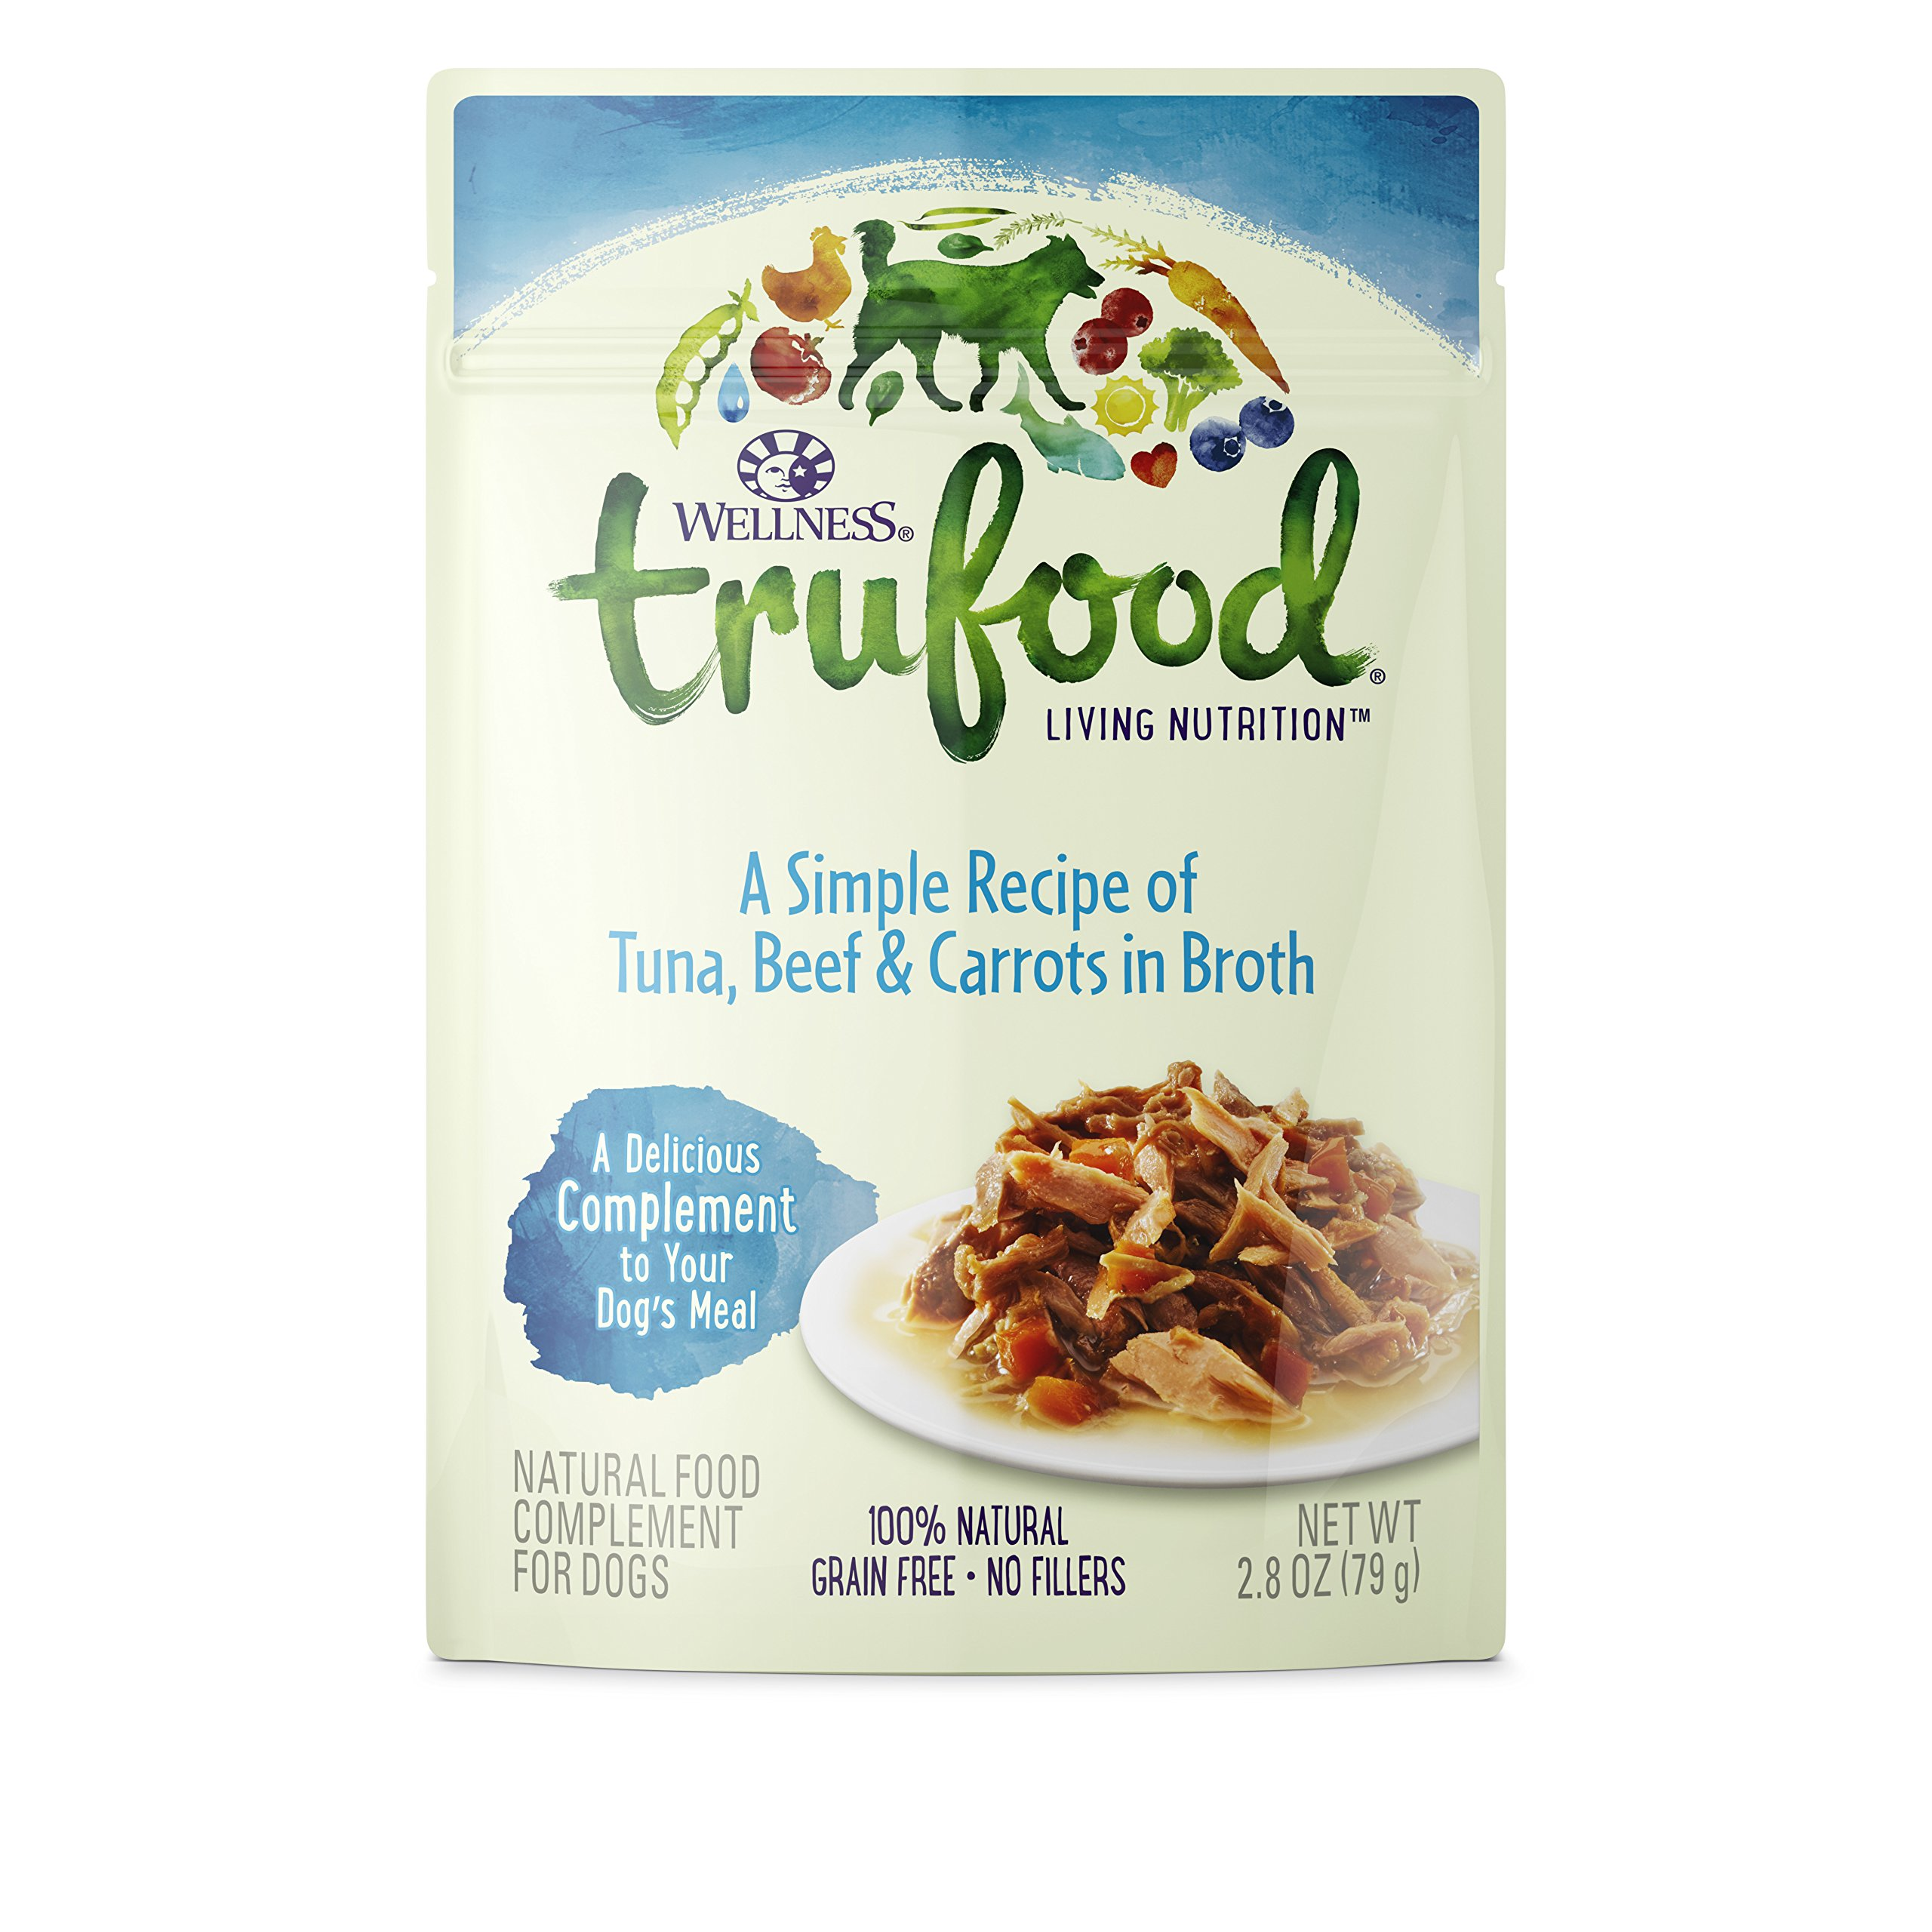 Wellness Trufood Complements Natural Grain Free Wet Raw Dog Food, Tuna, Beef & Carrots, 2.8-Ounce Pouch (Pack Of 24) by Wellness